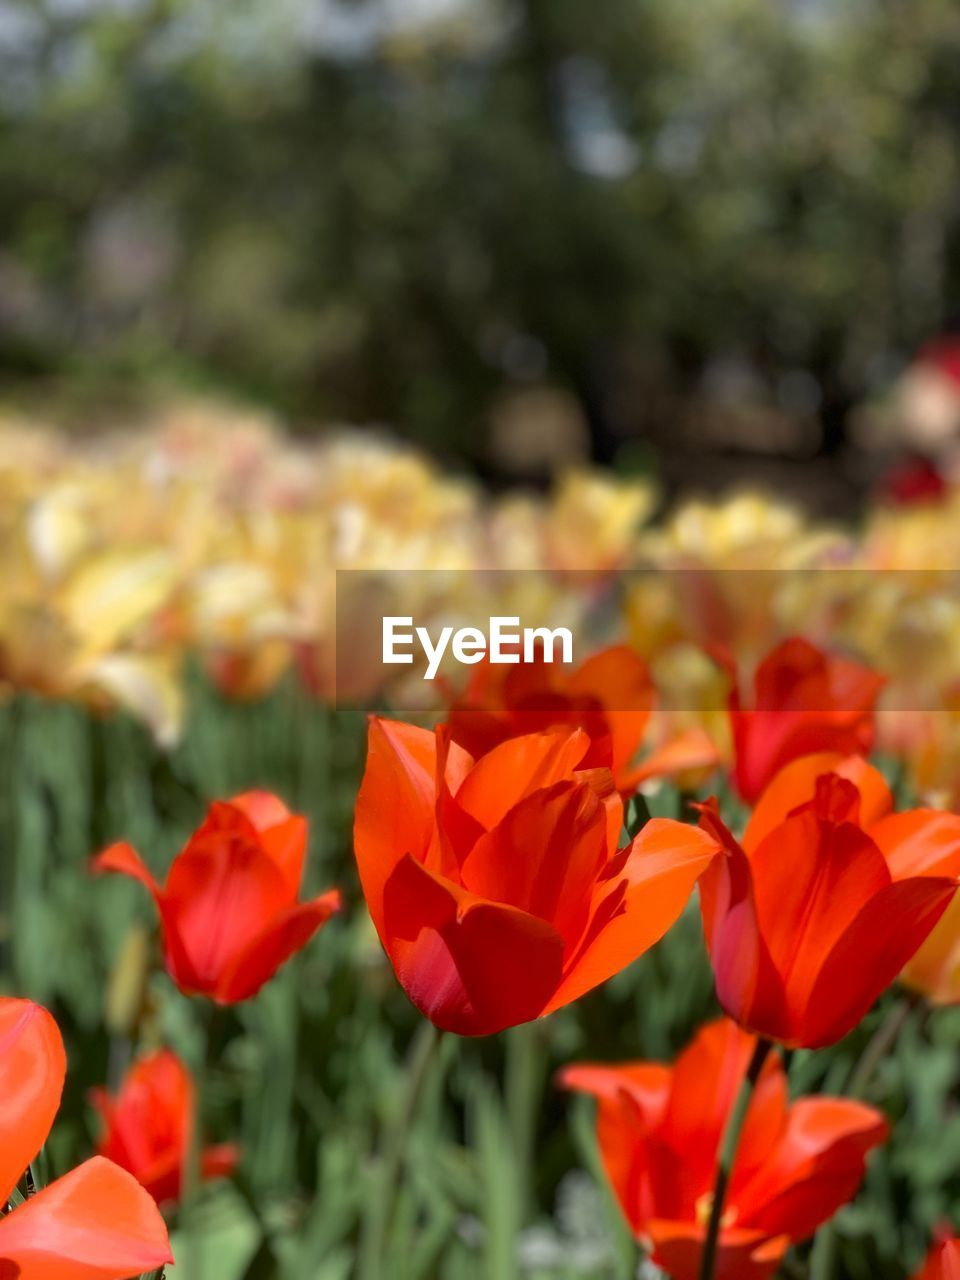 flowering plant, flower, plant, beauty in nature, freshness, vulnerability, fragility, petal, growth, close-up, inflorescence, flower head, day, red, nature, no people, focus on foreground, field, leaf, sunlight, outdoors, flowerbed